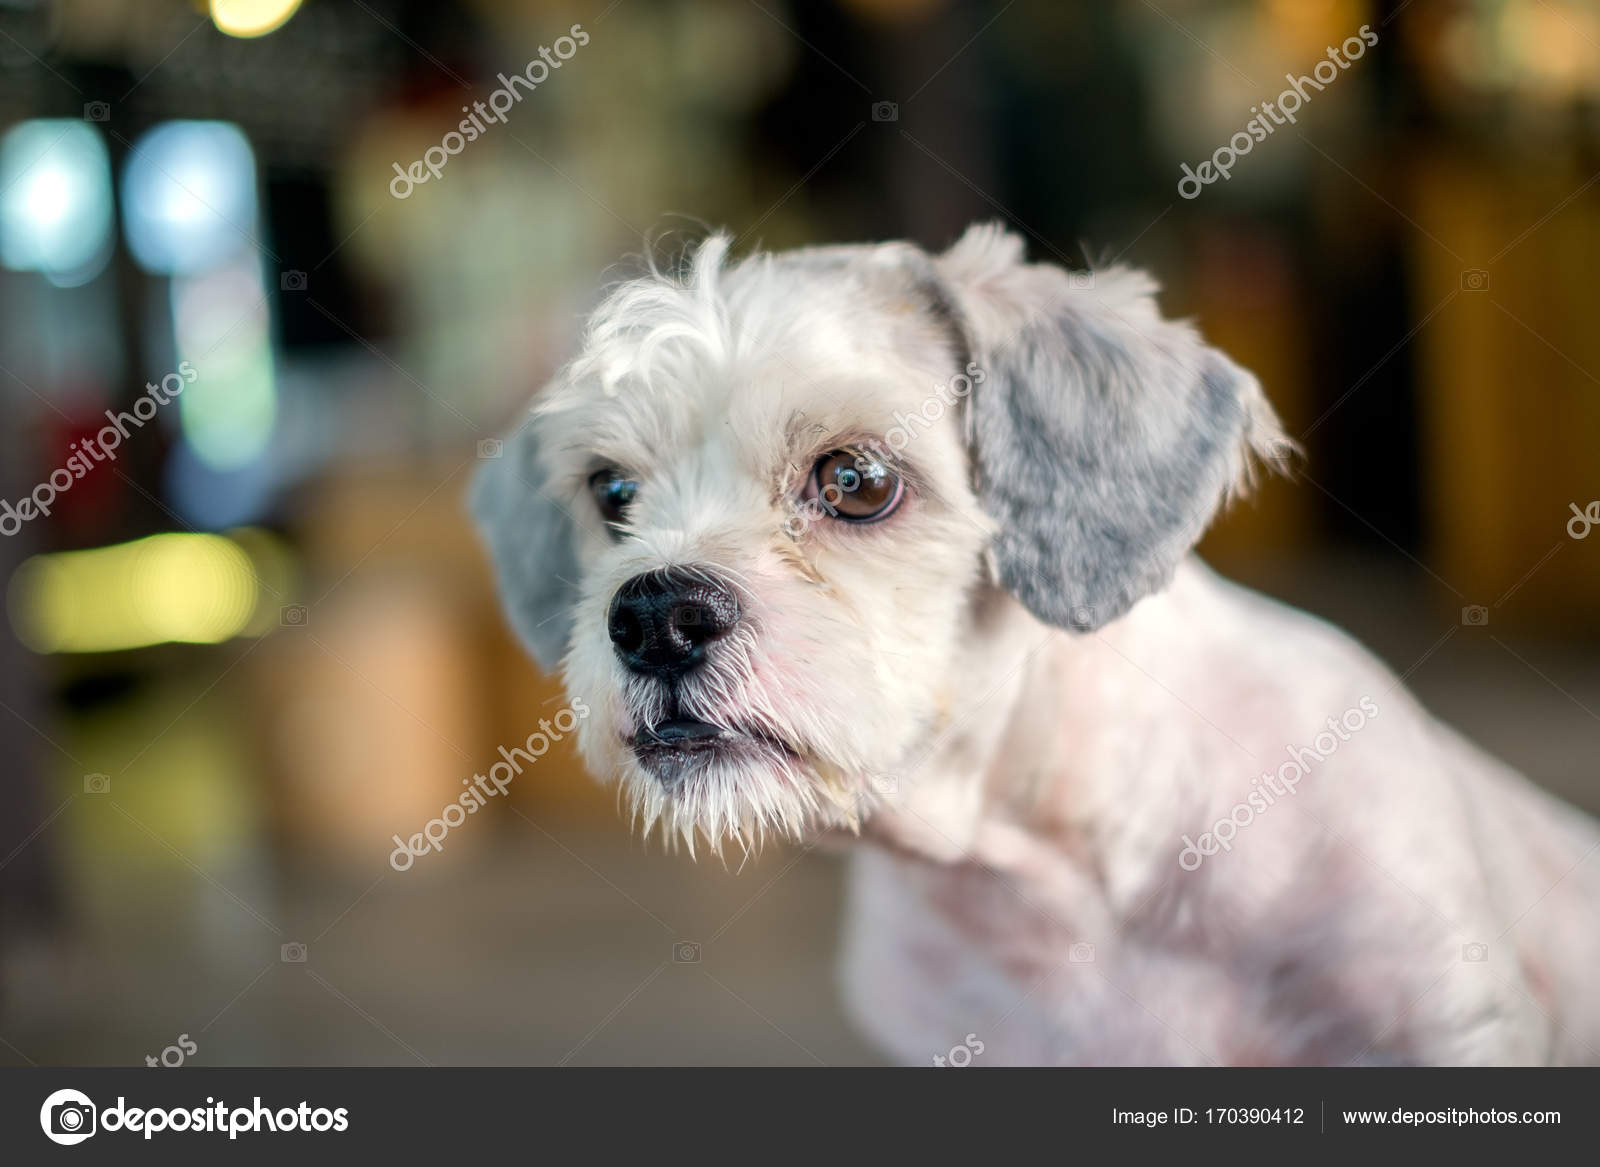 Short Hair White Shih Tzu Dog Gaze At Something With Blurred